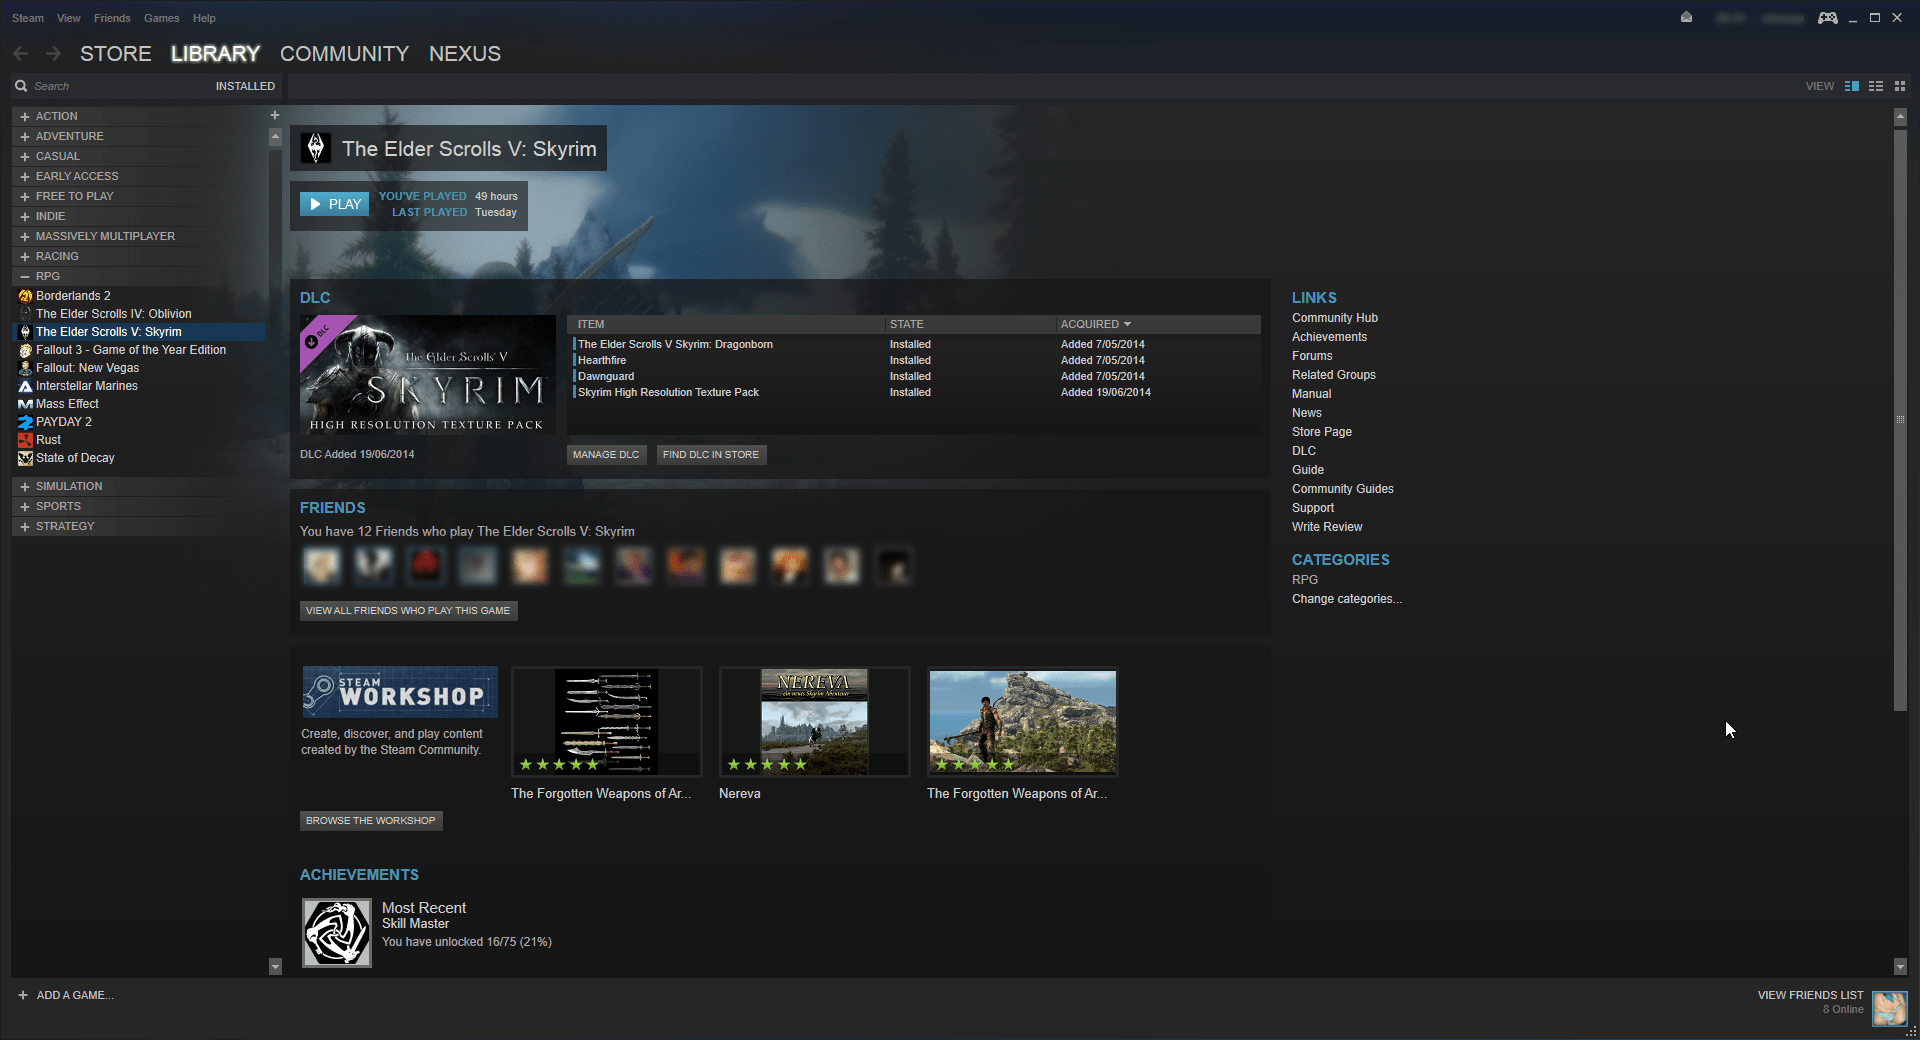 Steam DLC